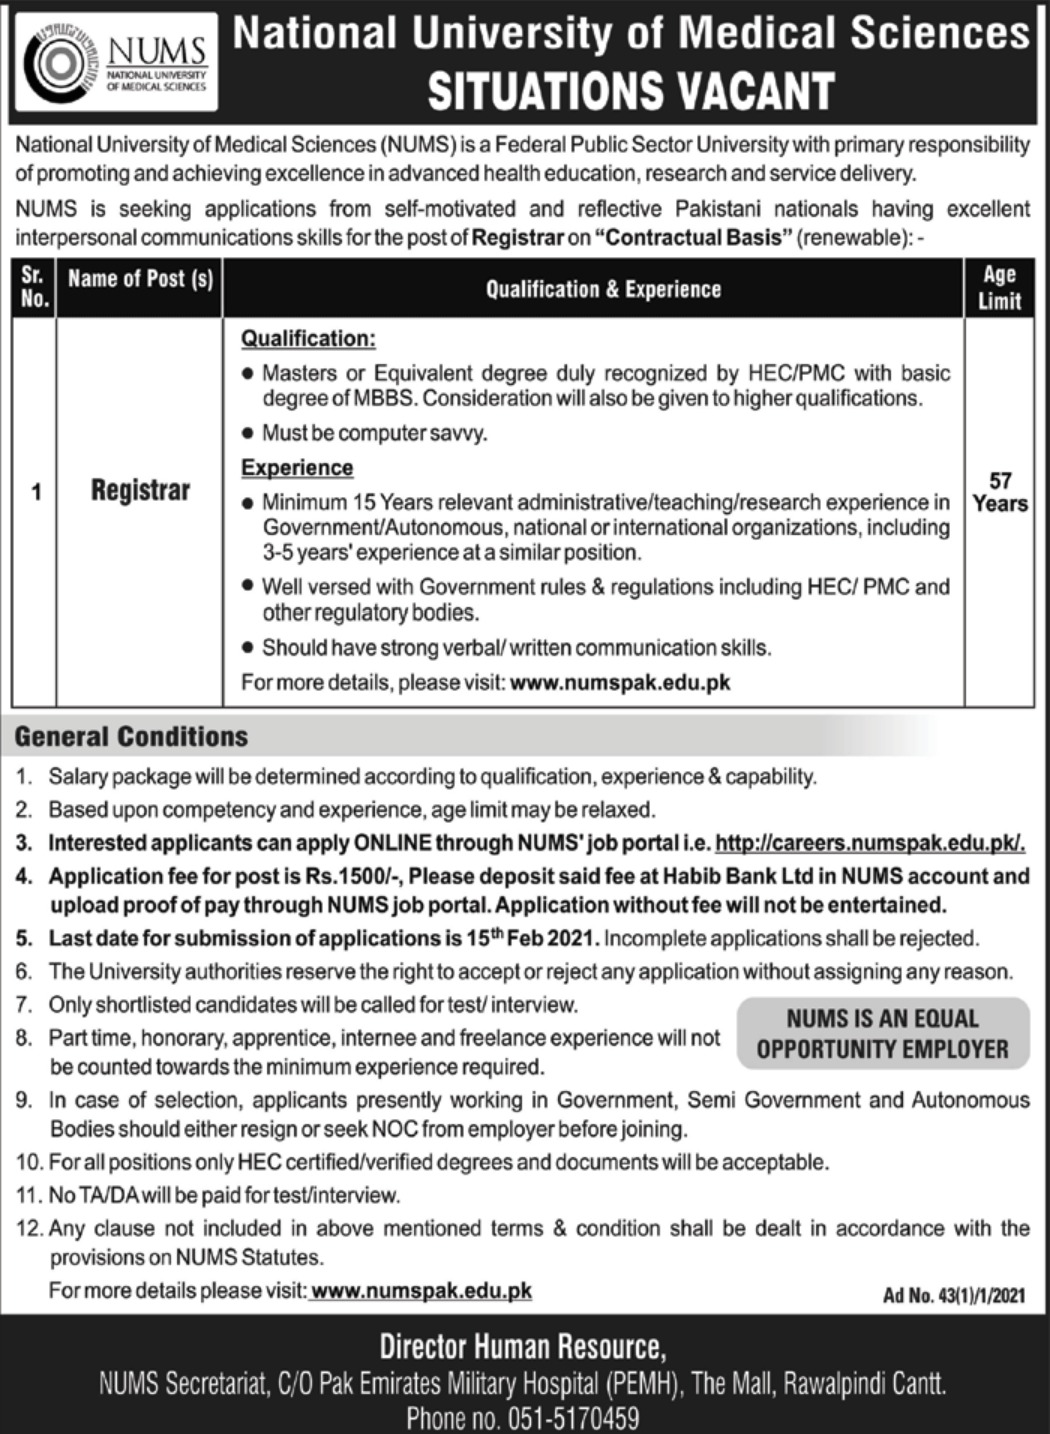 National University of Medical Sciences NUMS Jobs February 2021